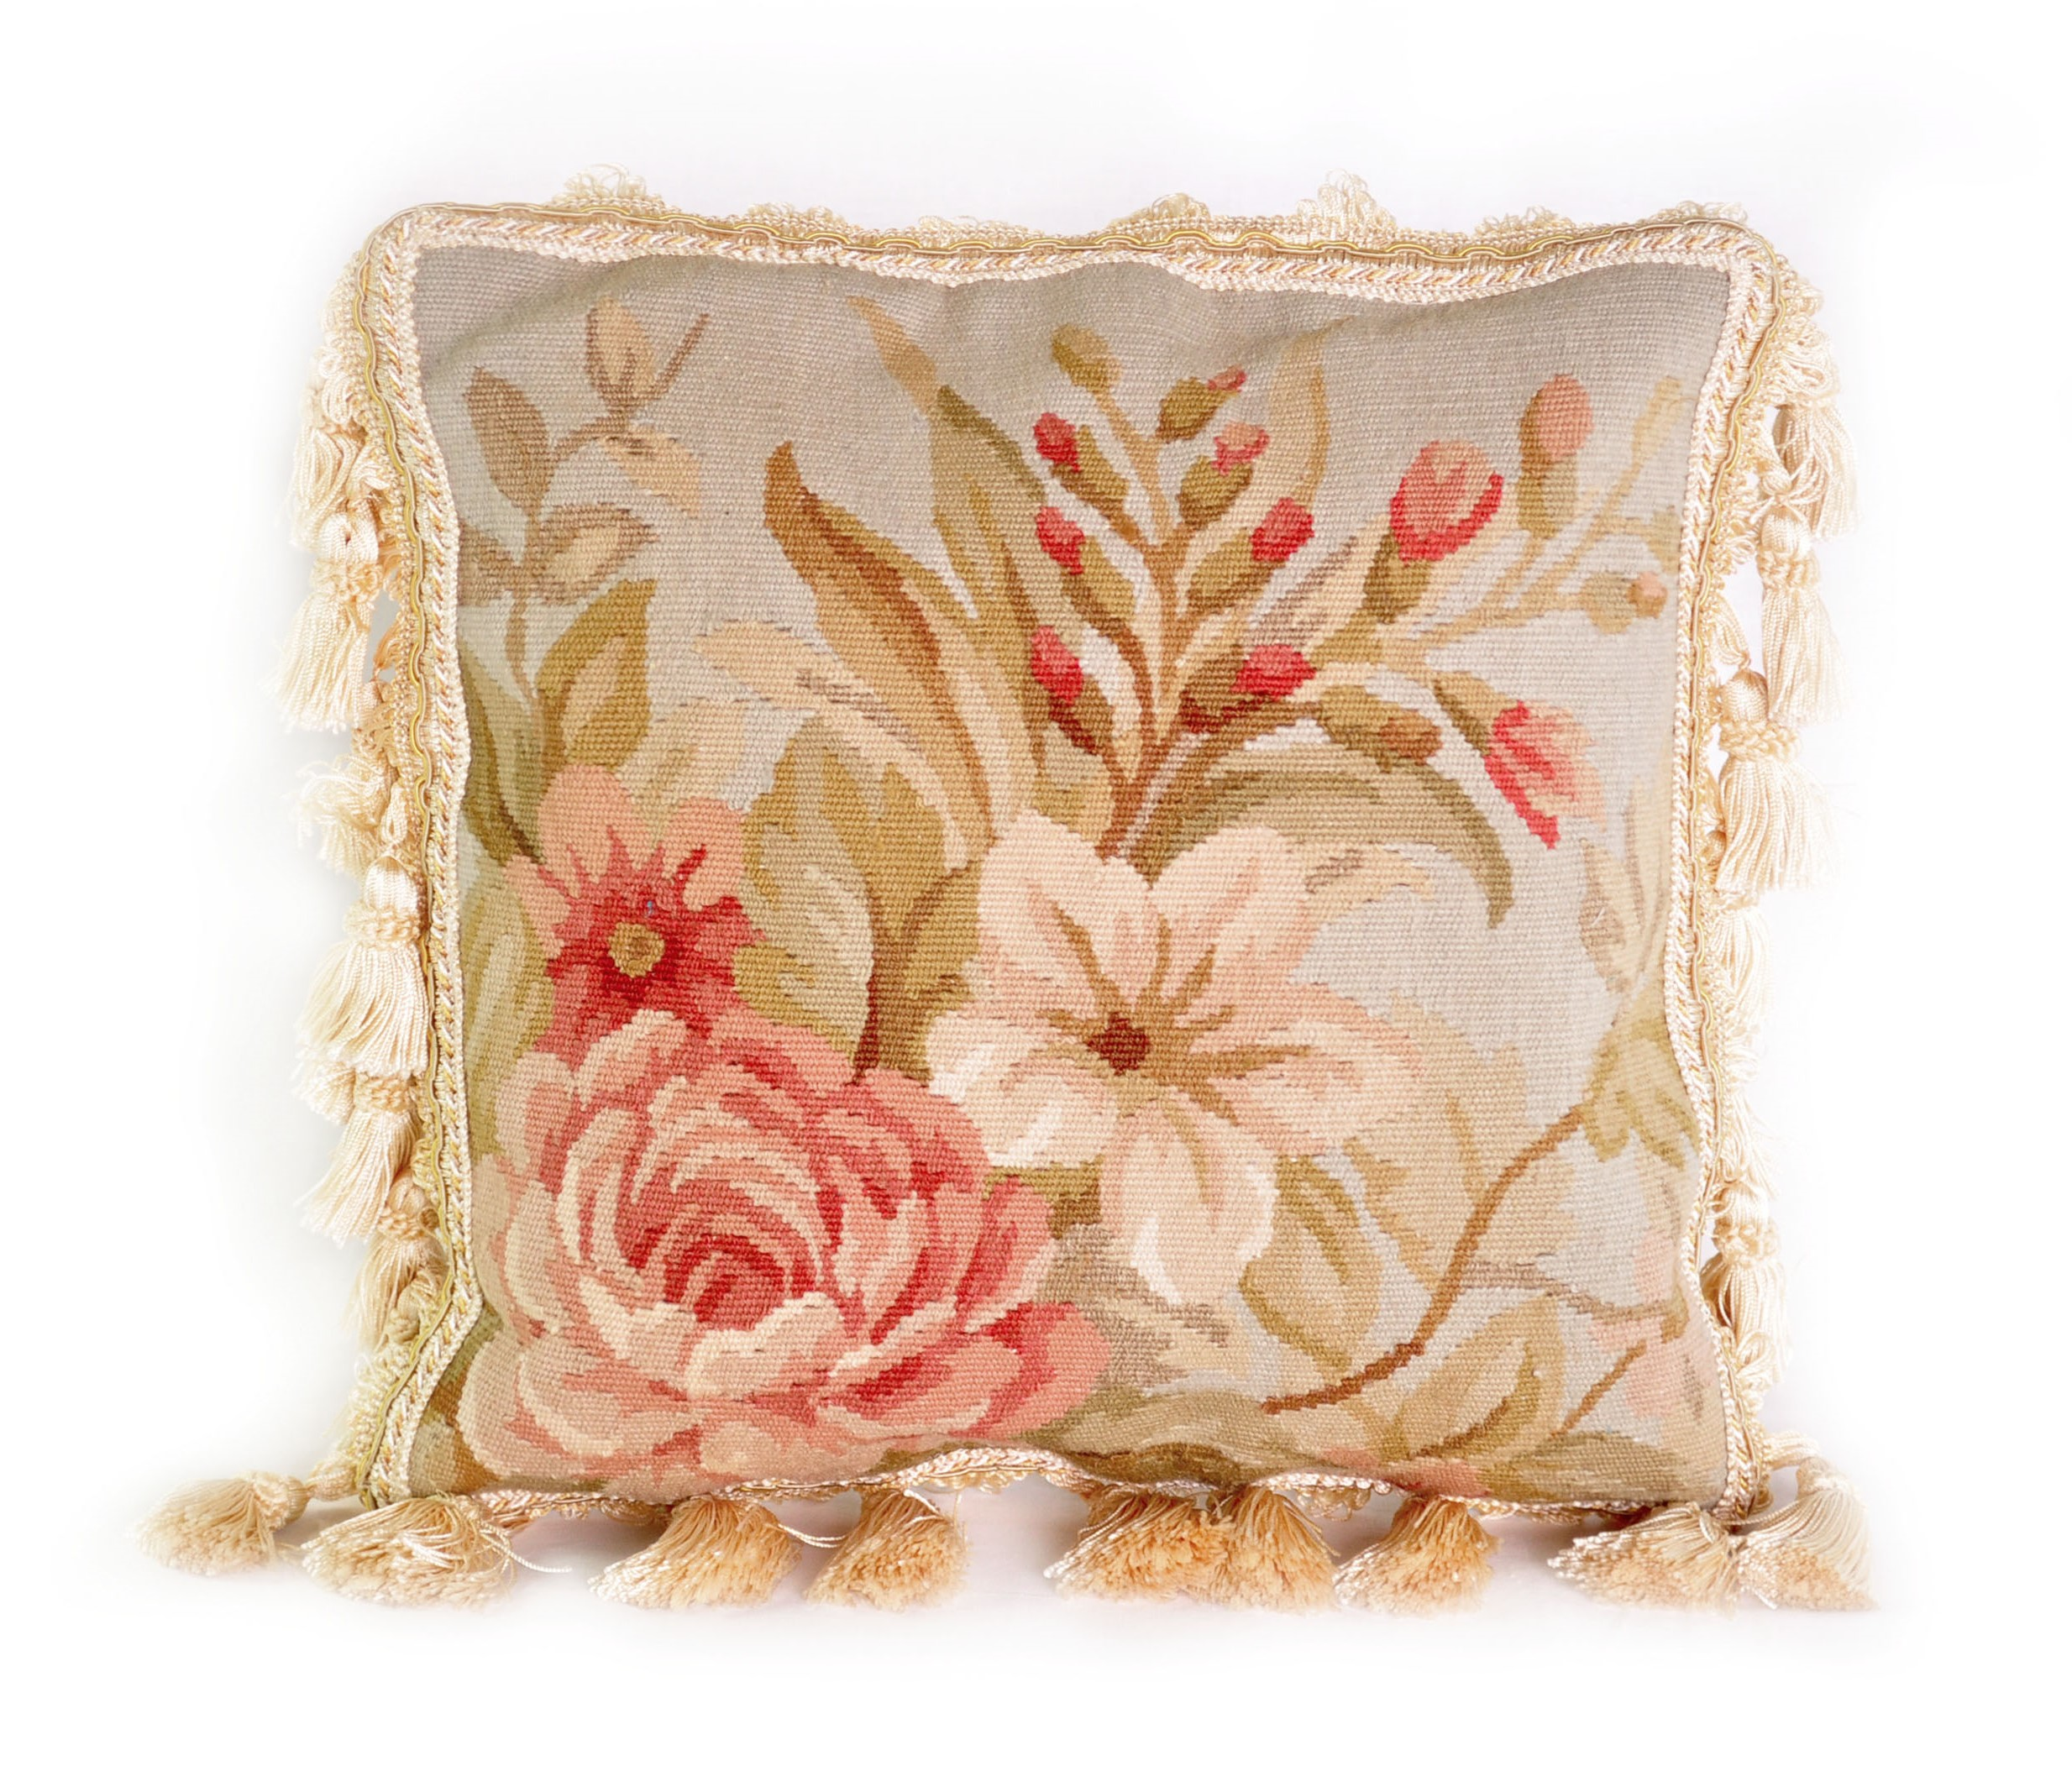 12″x12″ Hand-woven Aubusson Pillow Cover 12981001